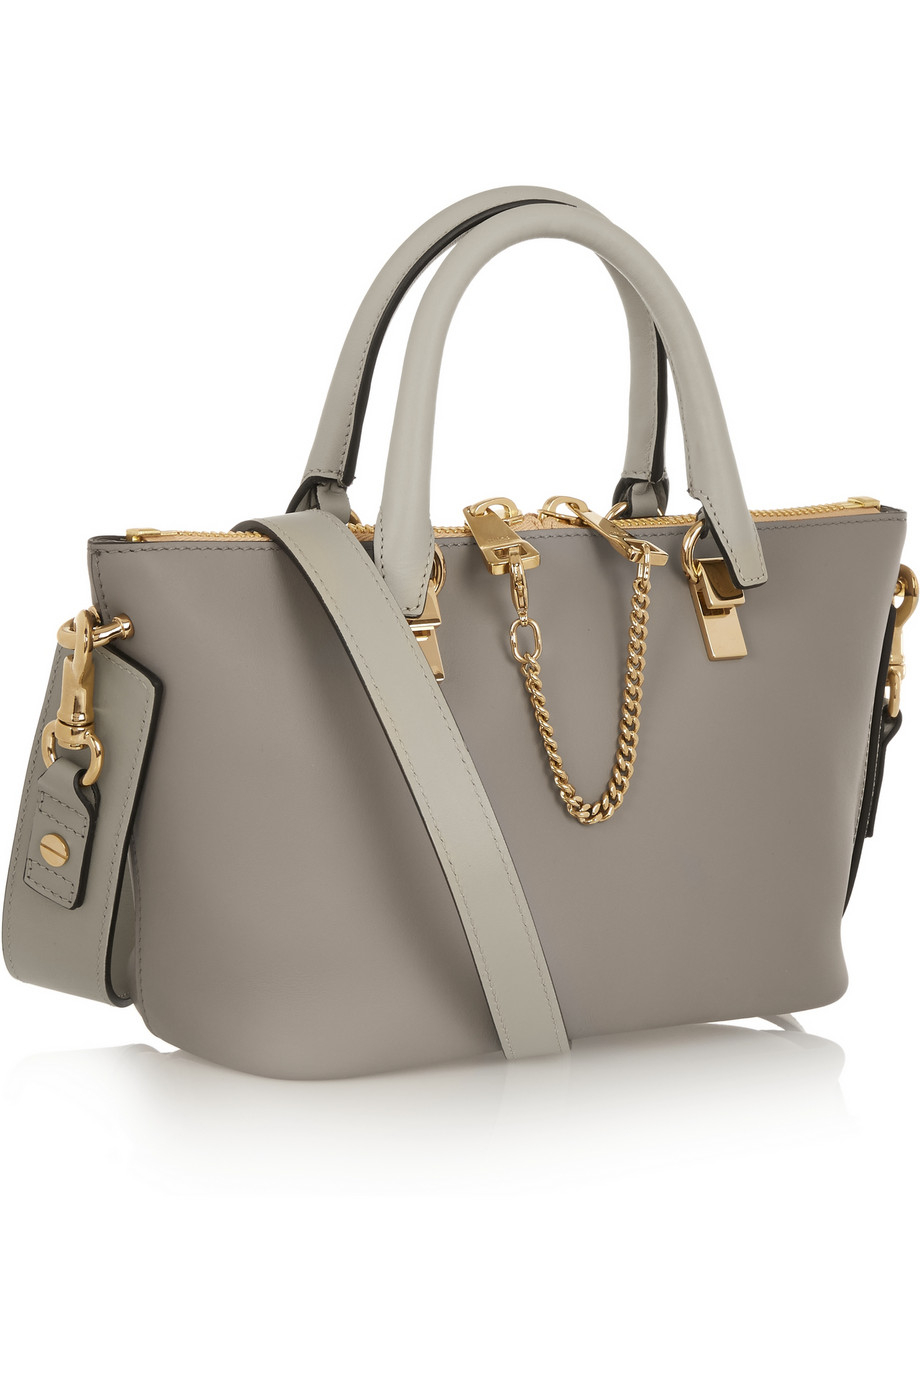 Chlo¨¦ Baylee Mini Leather Tote in Gray | Lyst